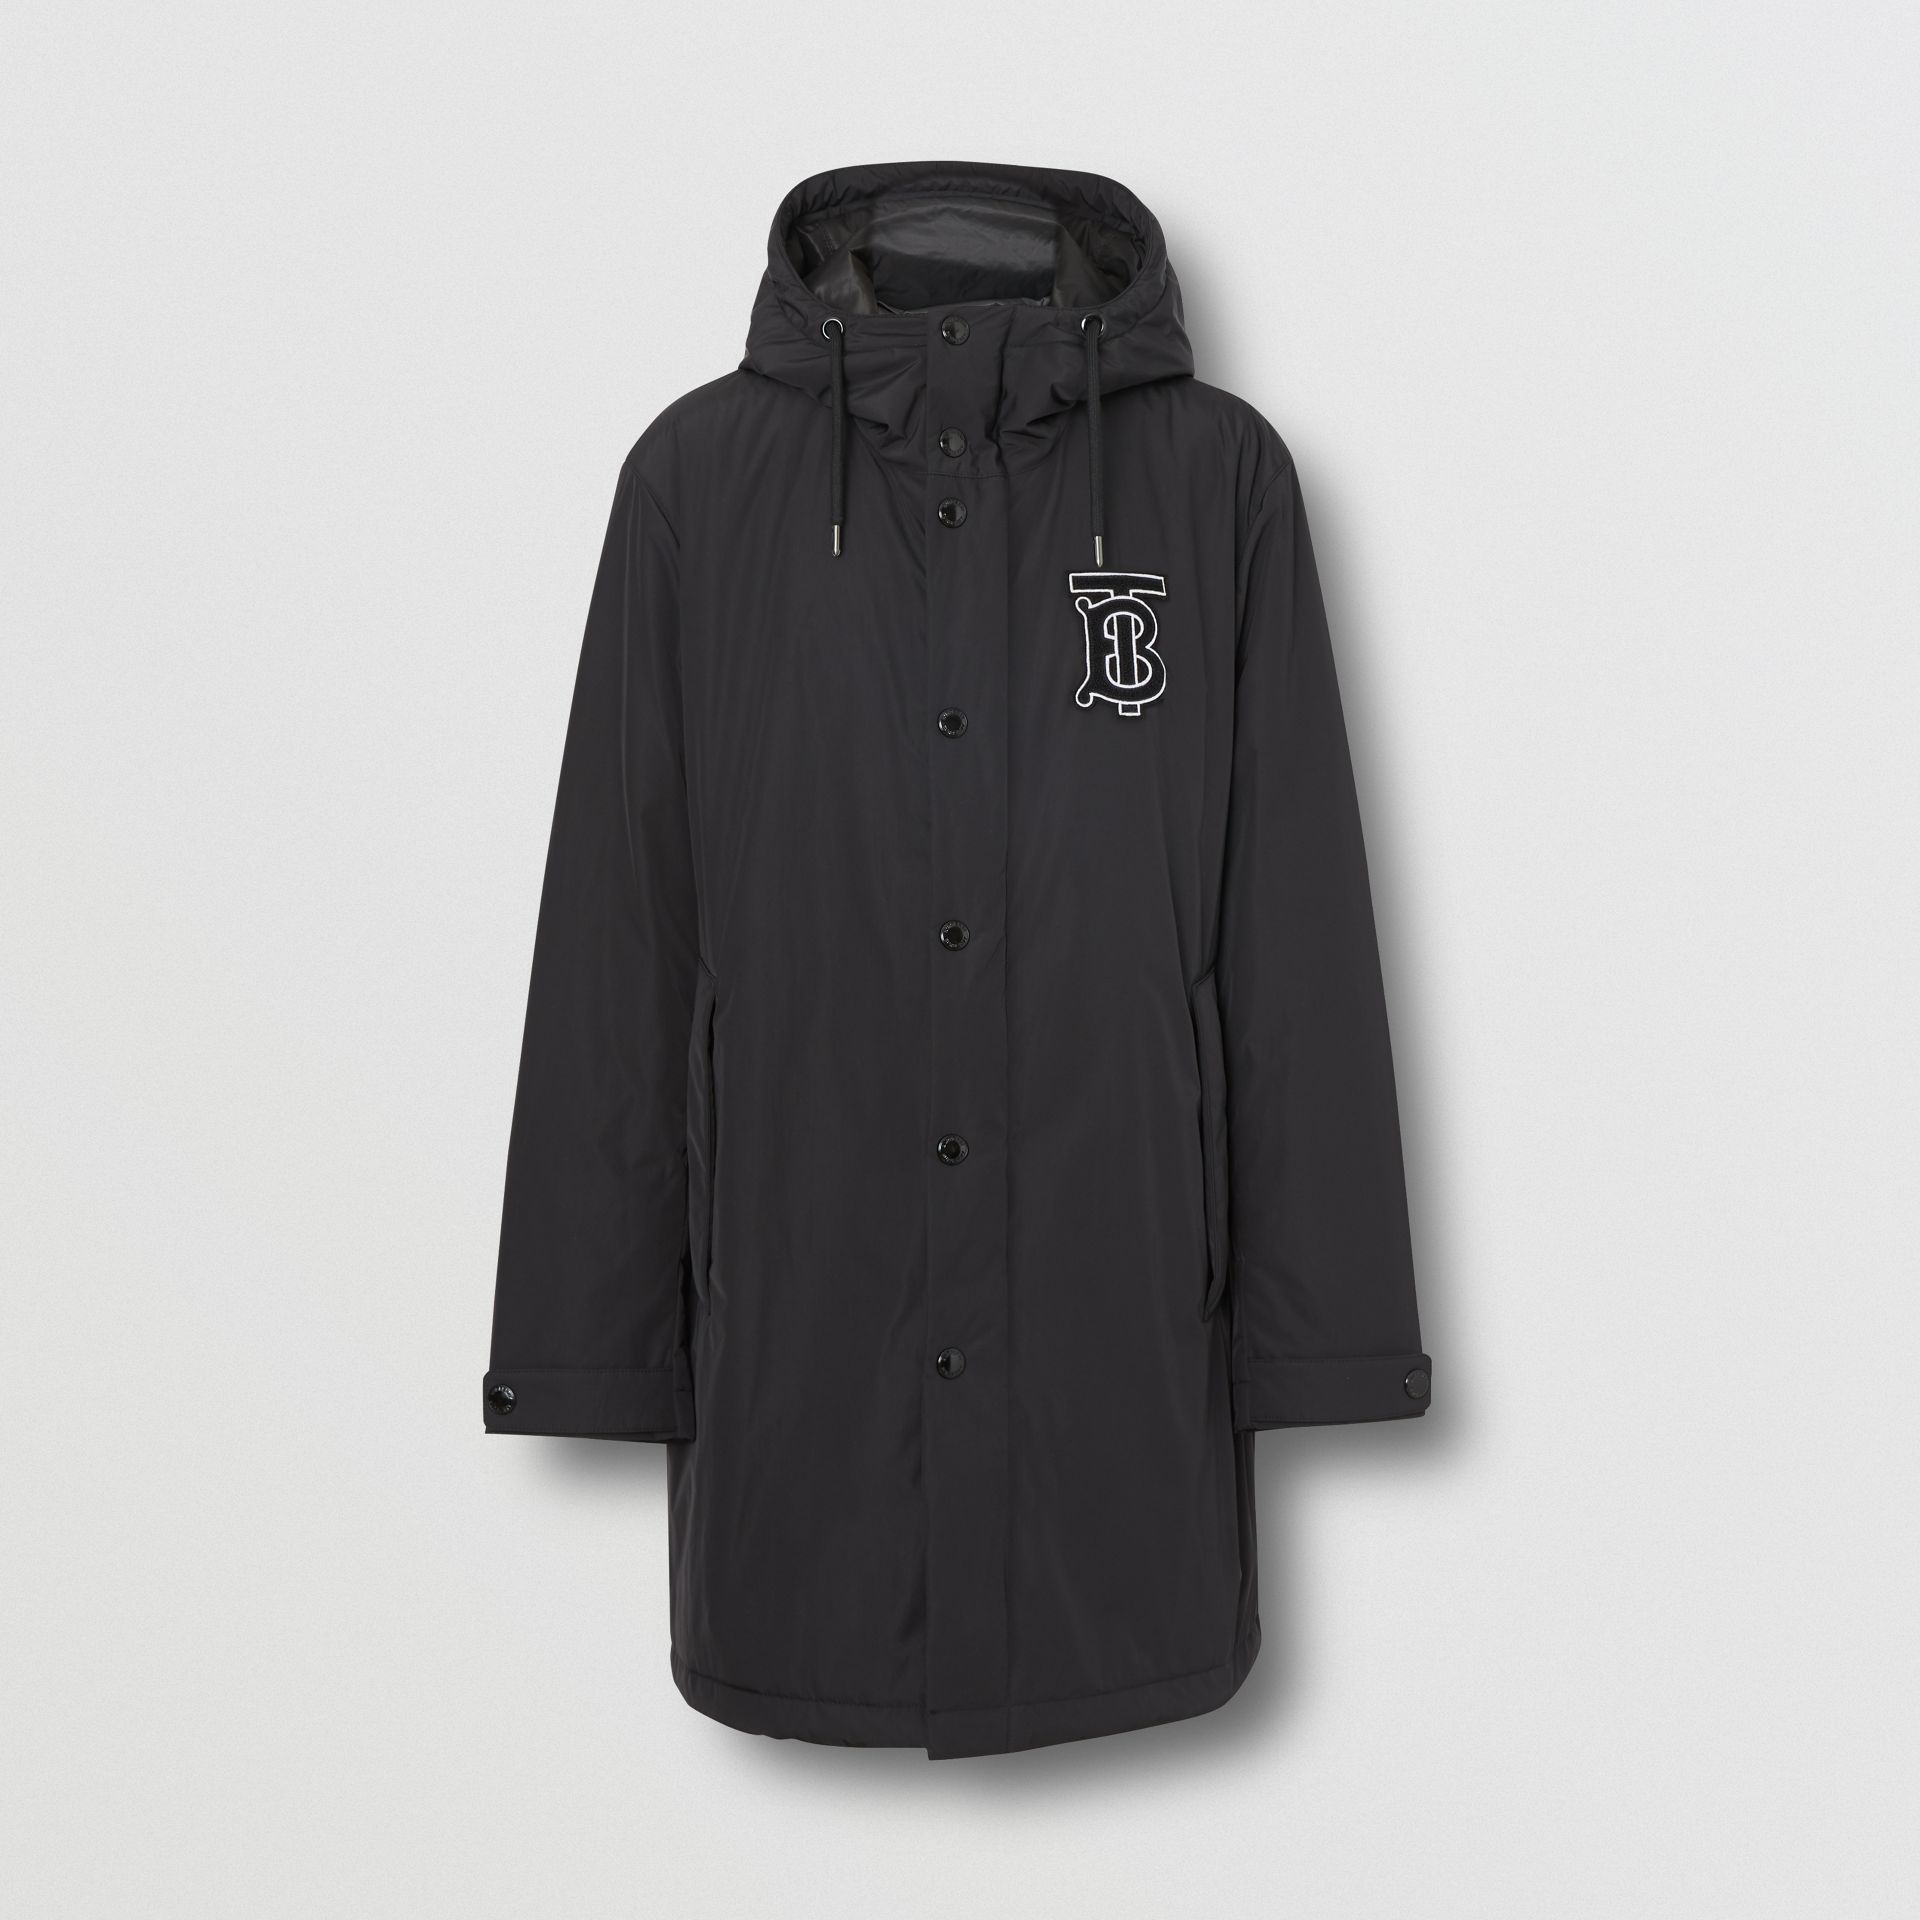 Monogram Motif Nylon Twill Hooded Coat in Black - Men | Burberry - gallery image 3